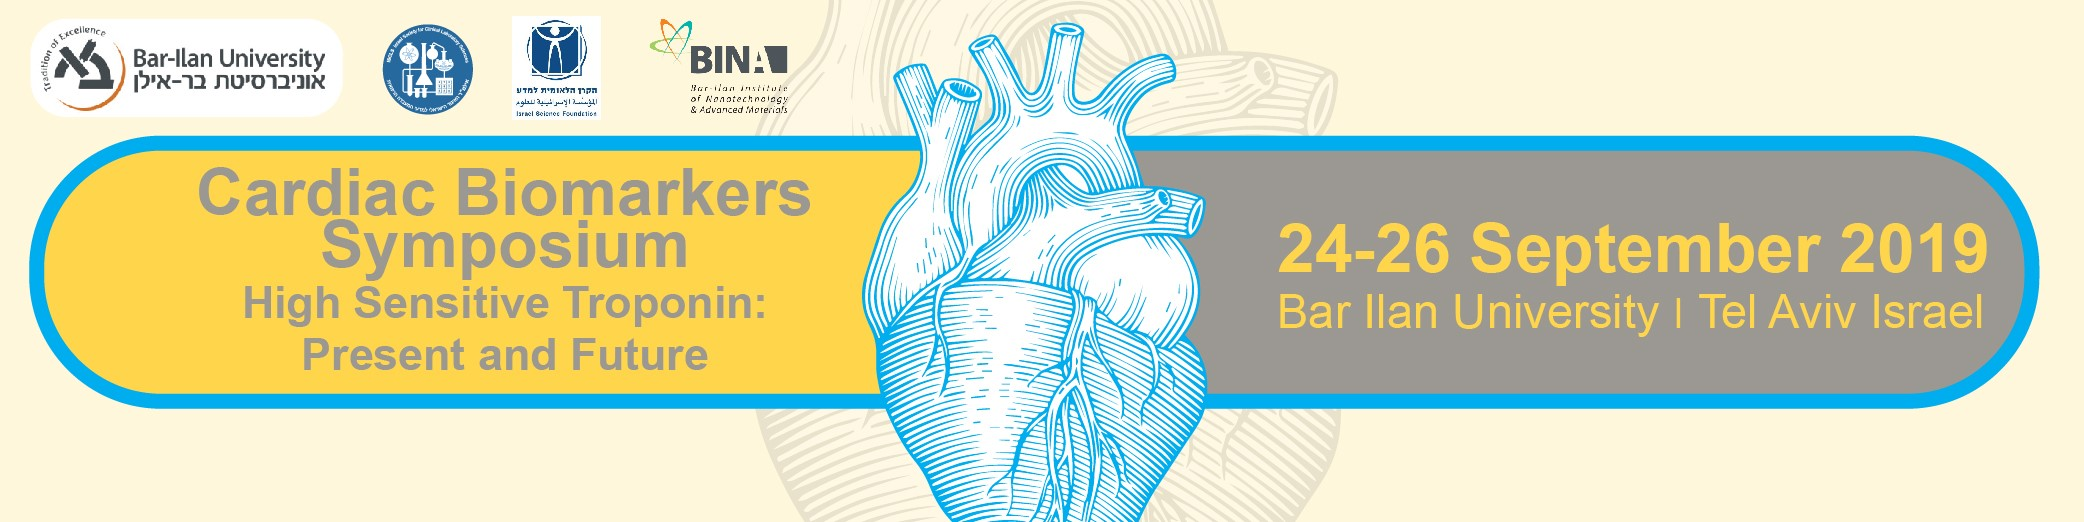 Cardiac Biomarkers SymposiumHigh Sensitive Troponin: Present and Future